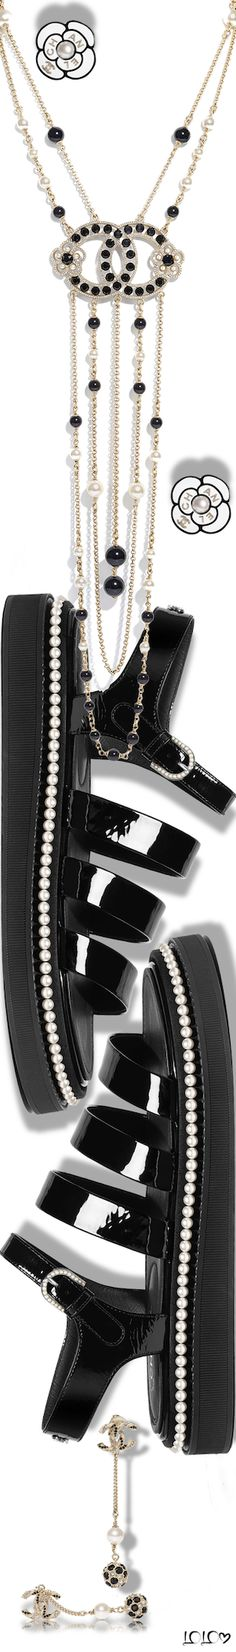 93032a58021e CHANEL SPRING SUMMER 2019 PRE-COLLECTION  chanel  sandals  jewelry